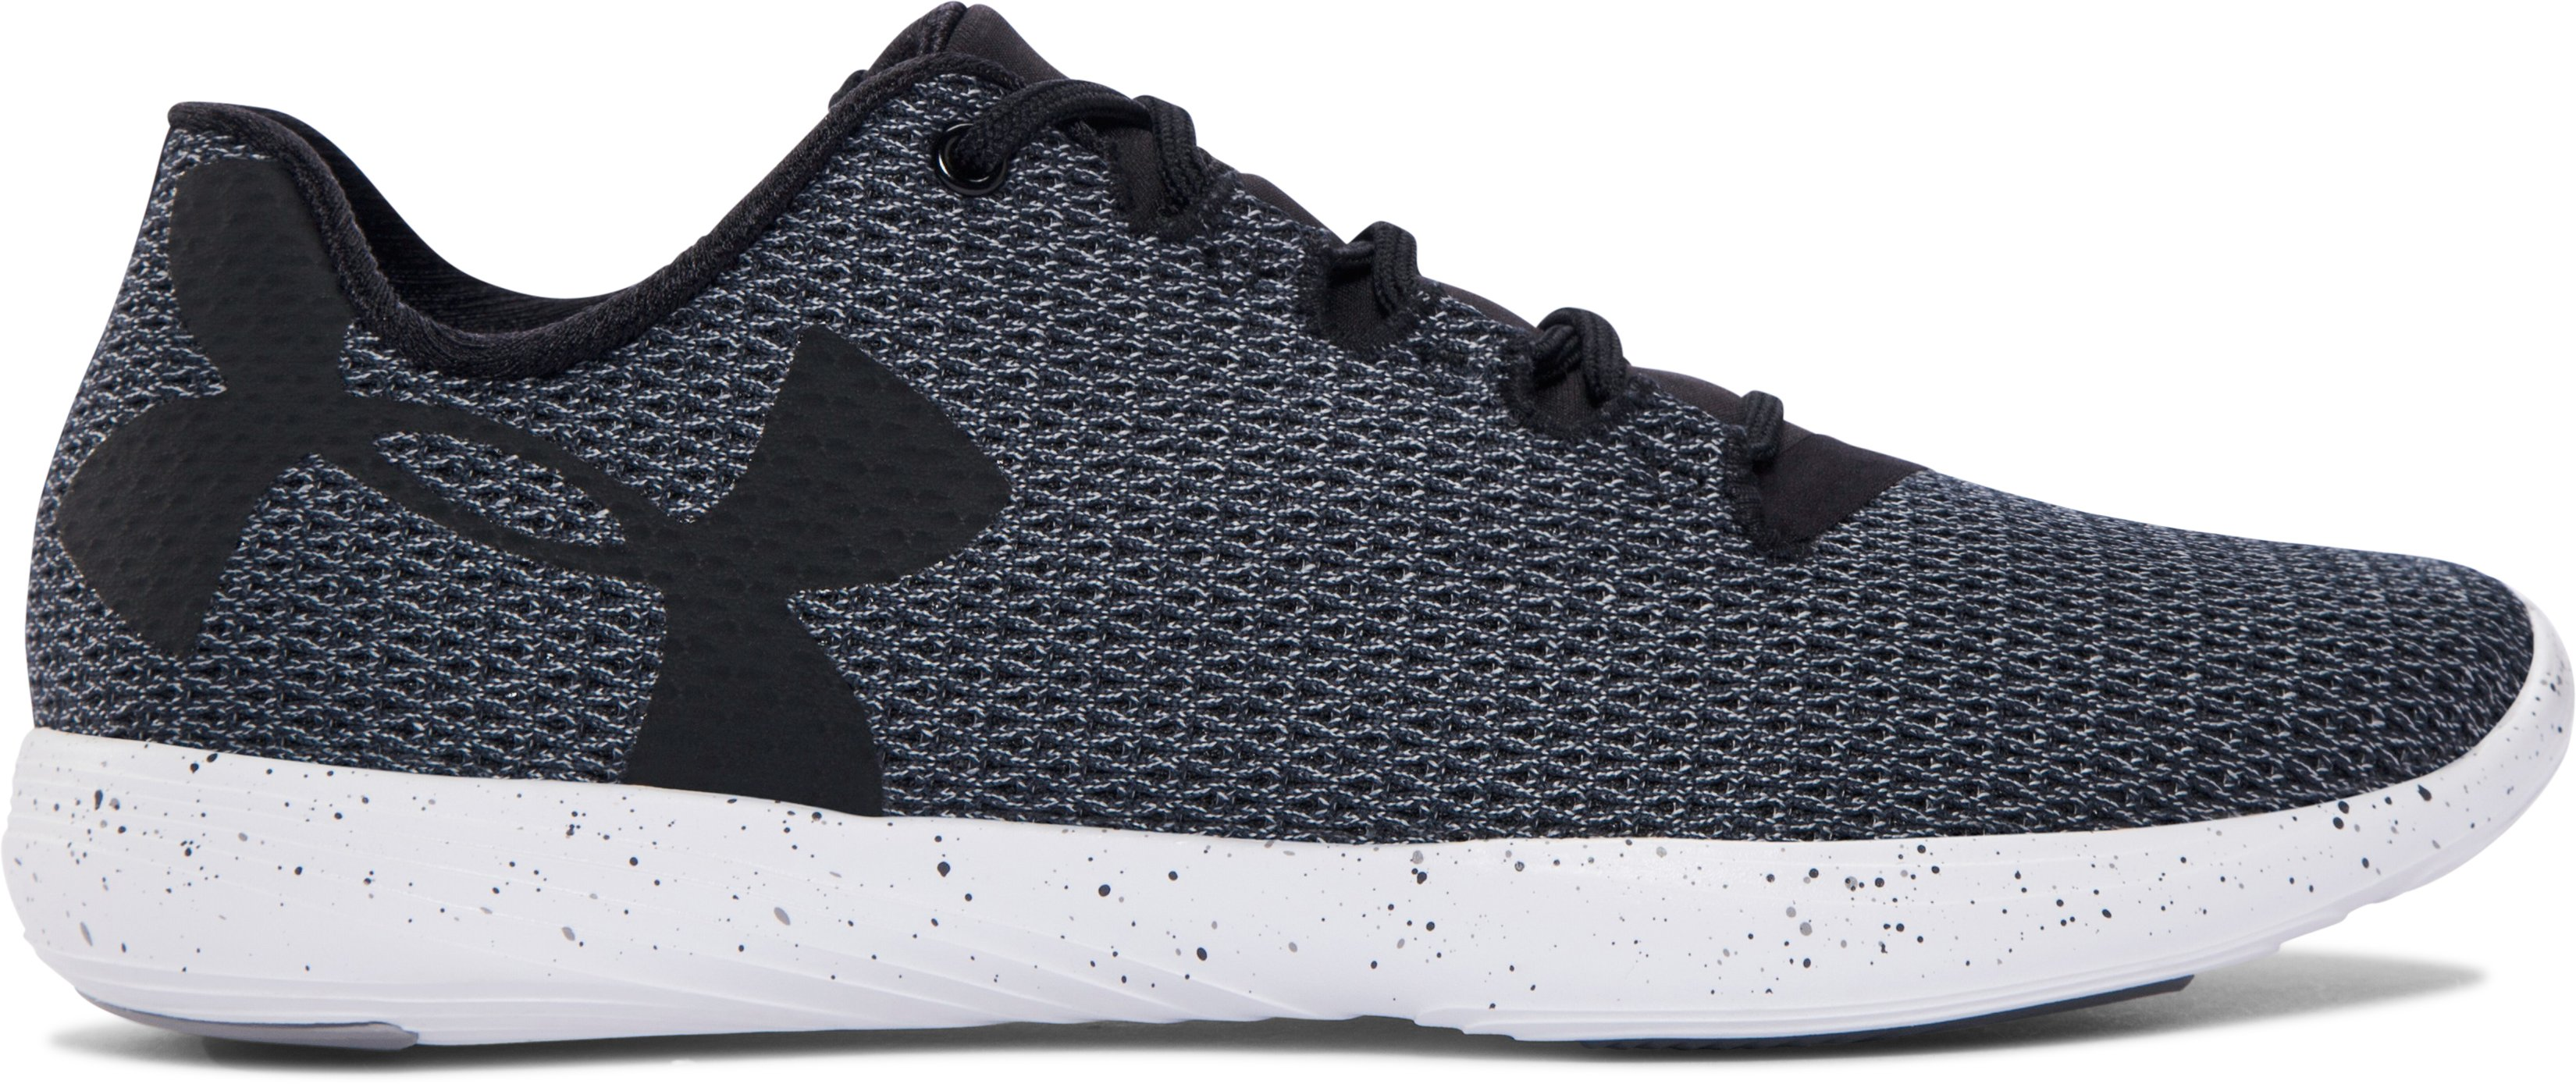 Women's UA Street Precision Low Speckle Shoes, Black